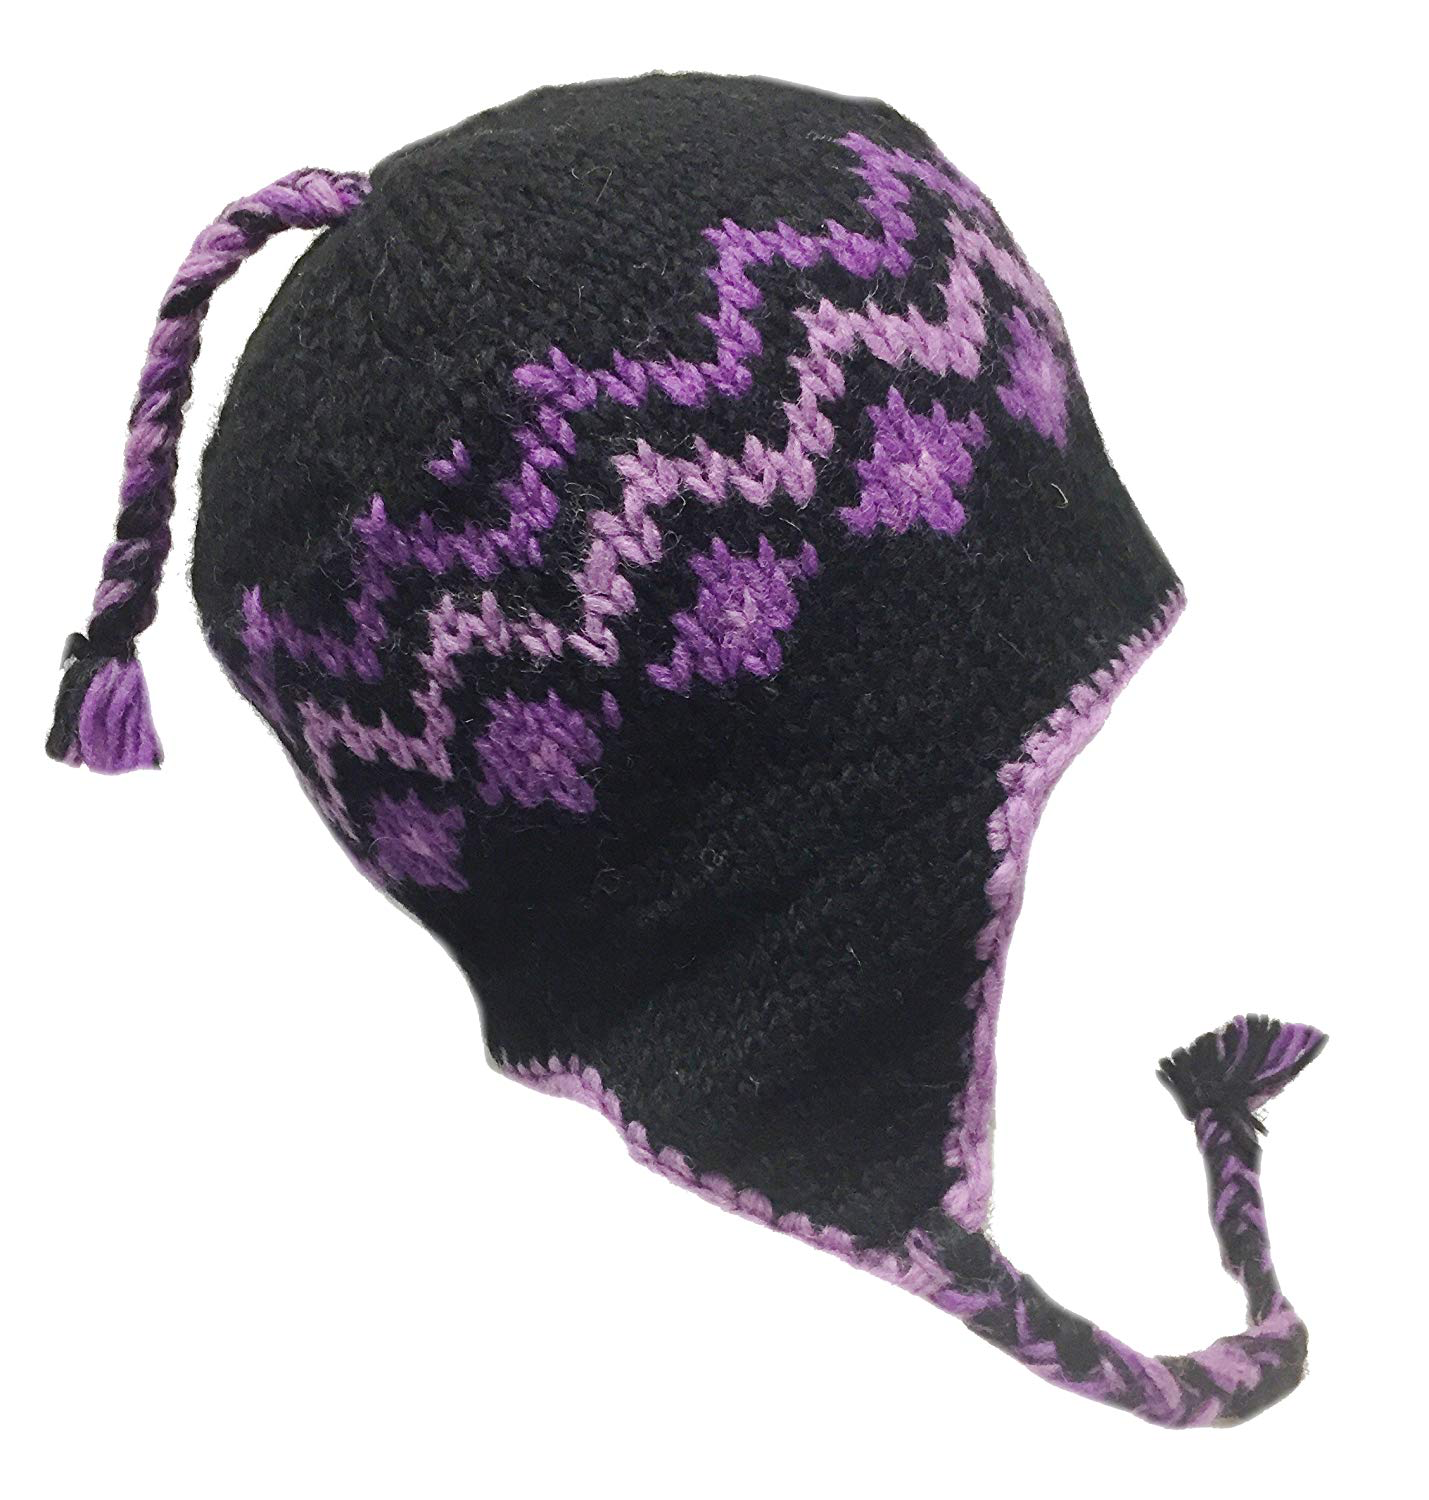 5ebf2d20a49 Sherpa Hat with Ear Flaps